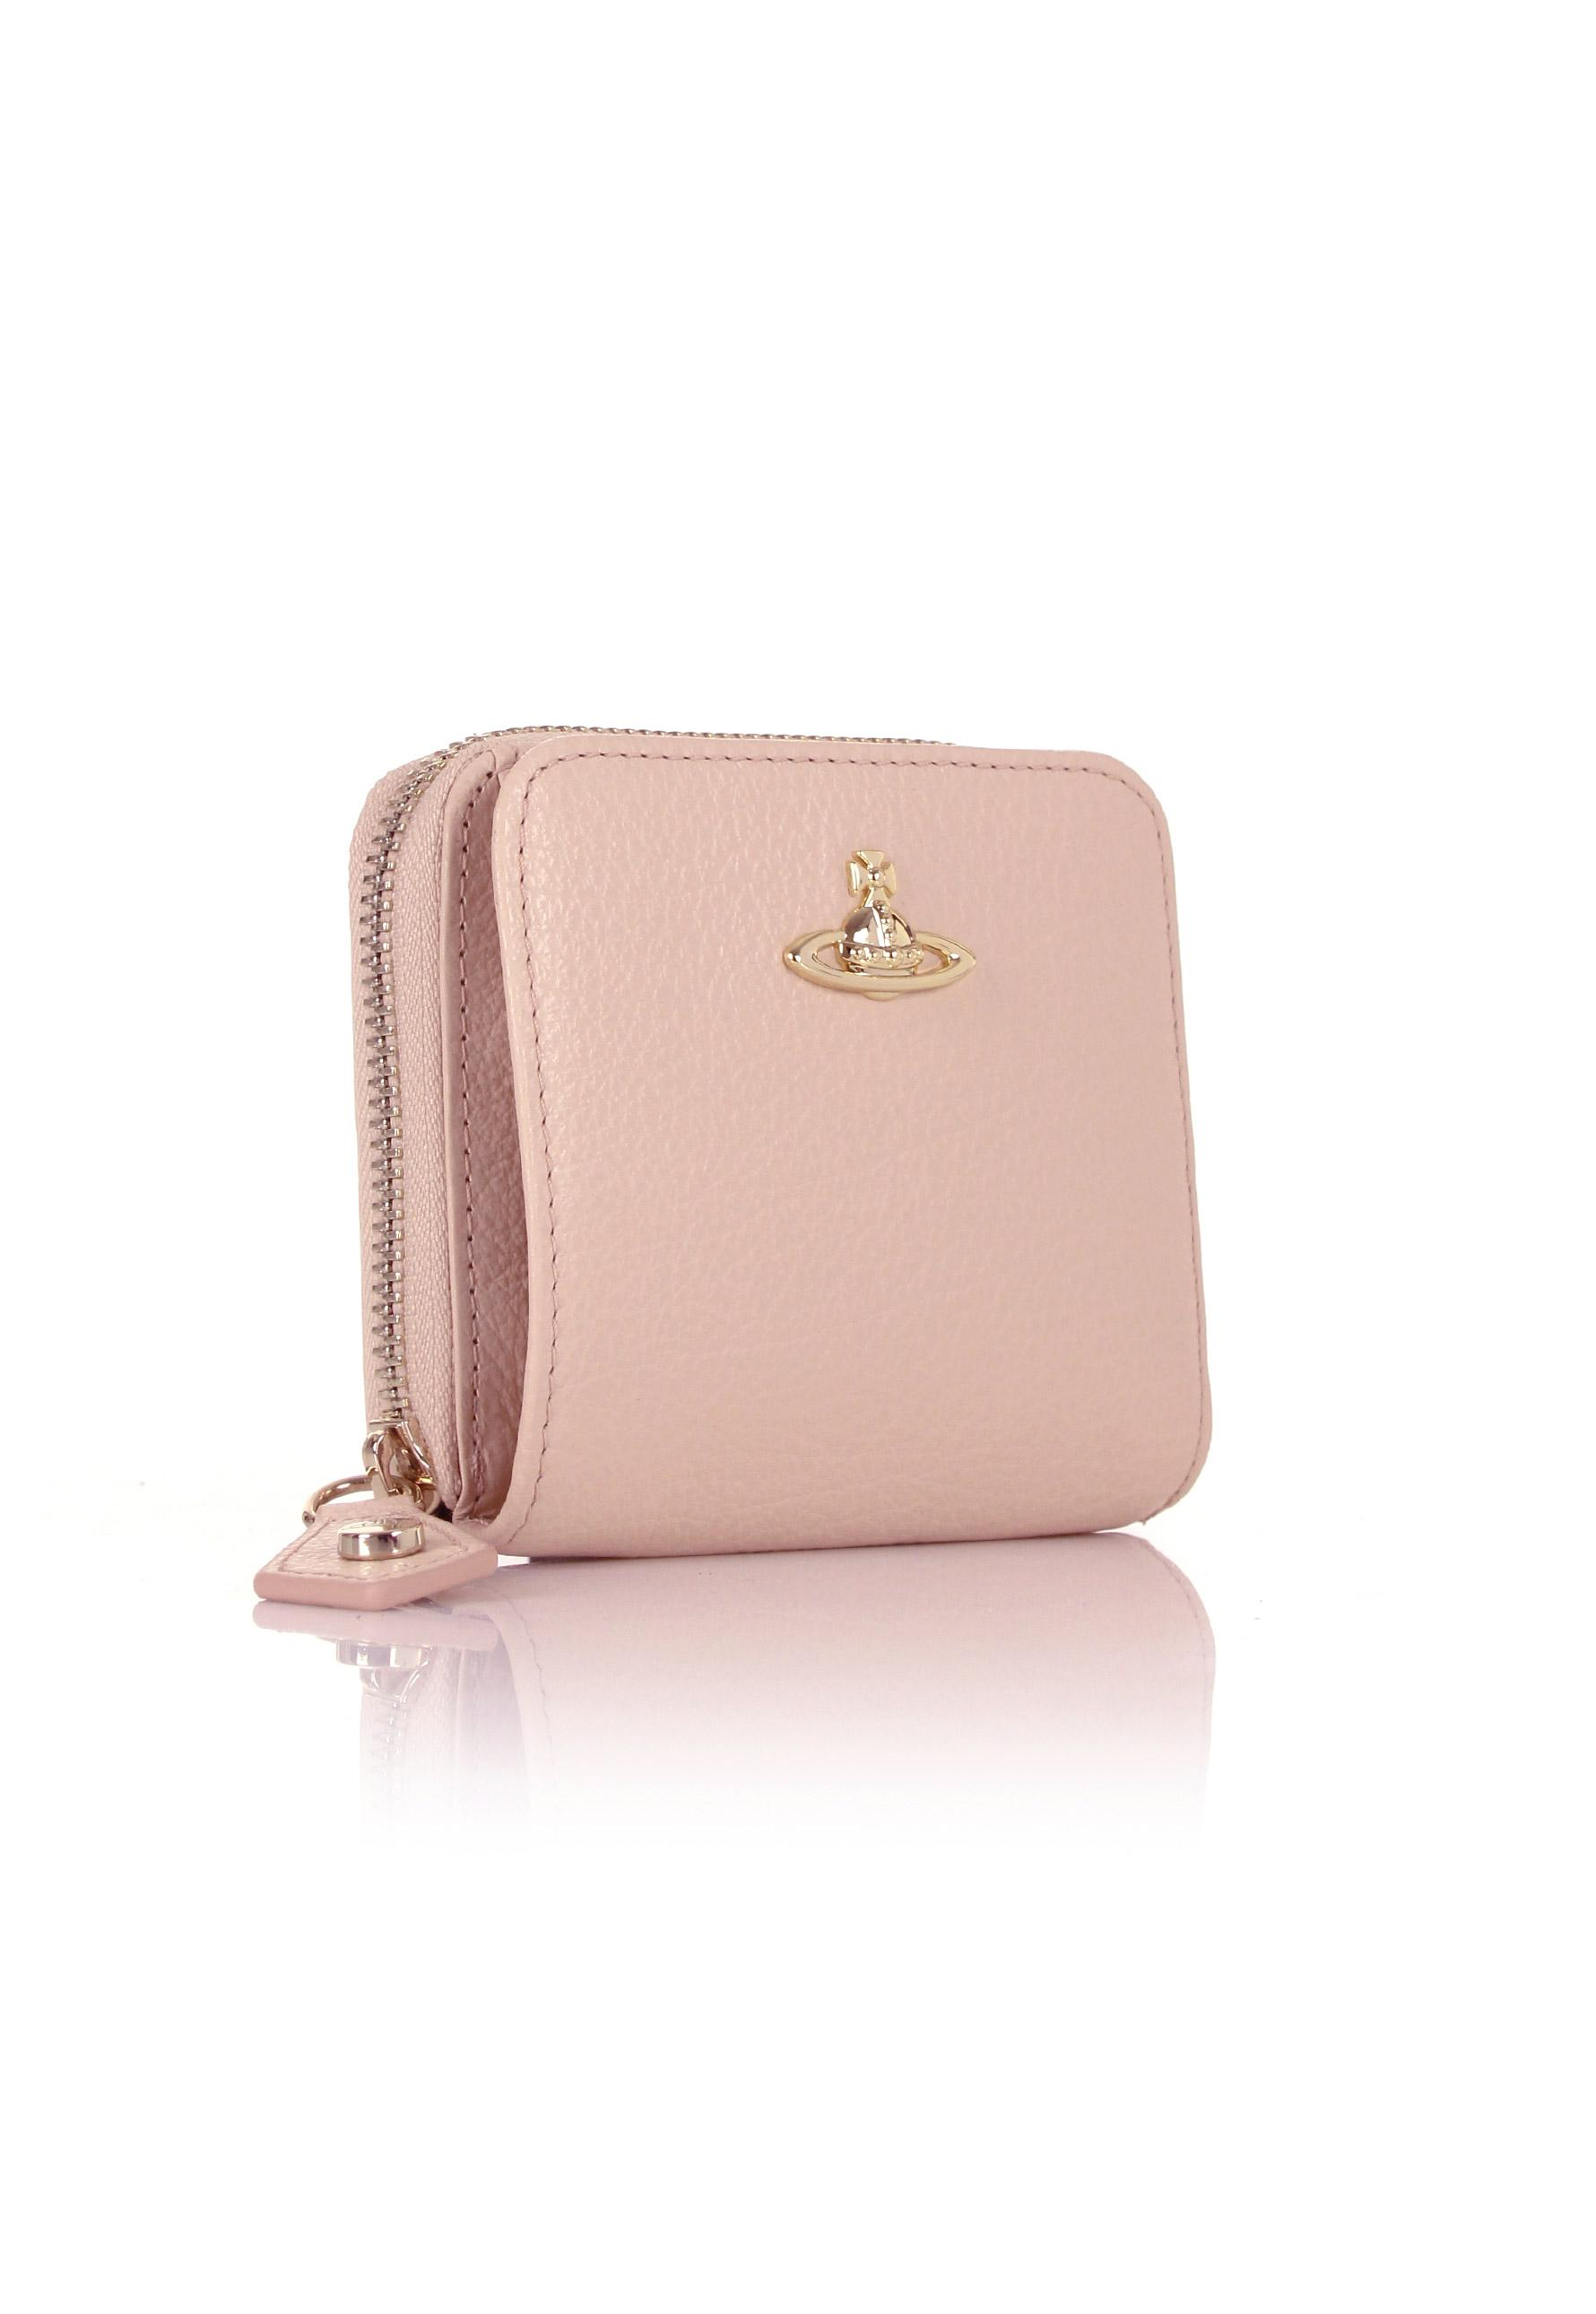 c2ff82b5f Vivienne Westwood Balmoral 321386 Medium Zip Around Wallet Pink ...